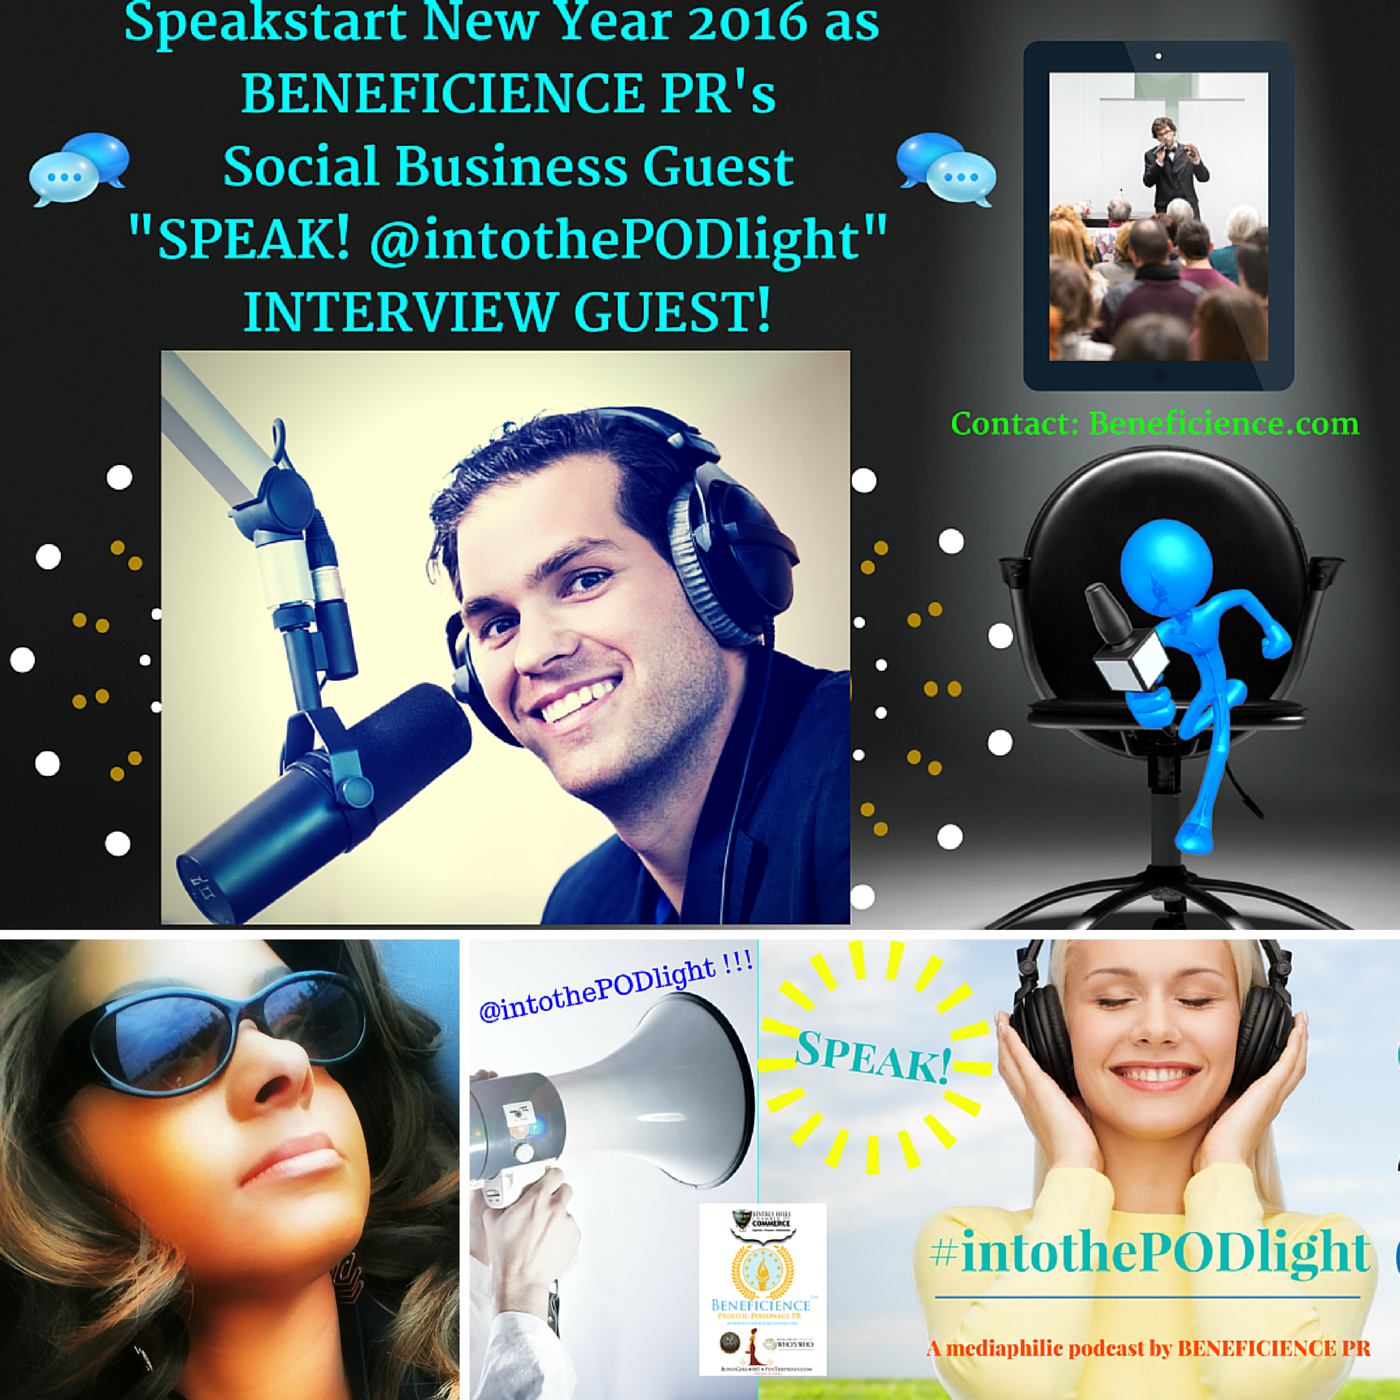 SPEAK! #intothepodlight – A mediaphilic podcast hosted by Tracey Bond – Beneficience.com PR